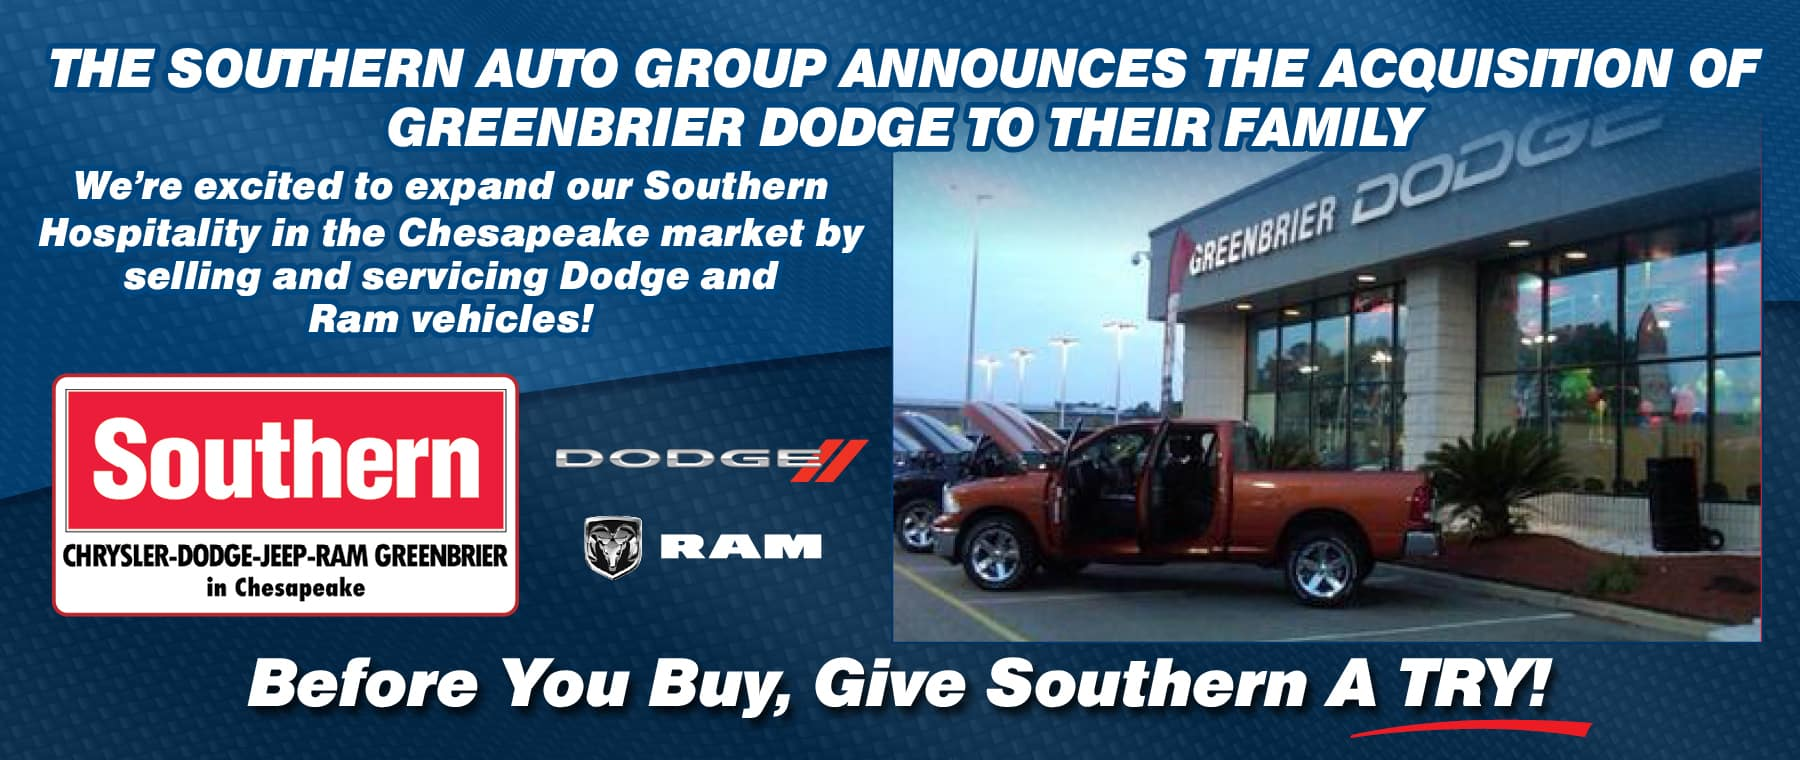 December Greenbrier Dodge